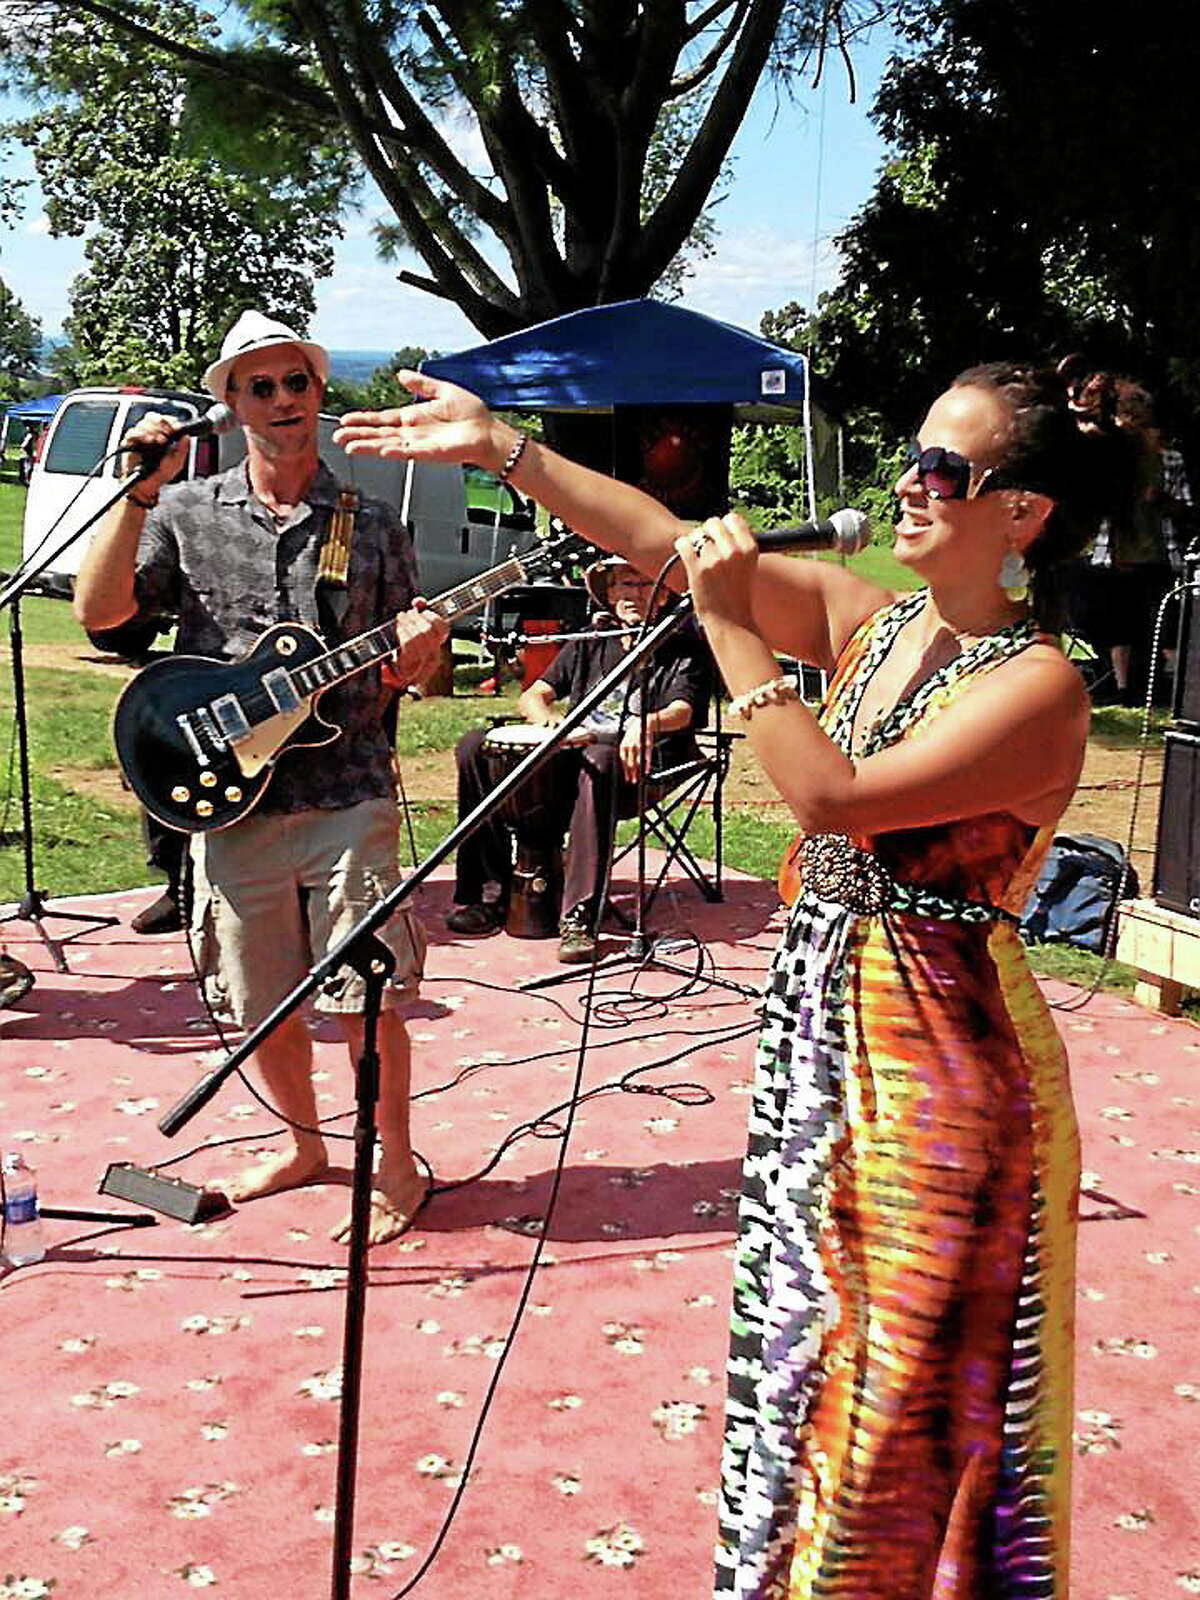 The third annual Middletown Music Festival kicks off Aug. 10 from noon to 8 p.m. at Middlesex Community College.